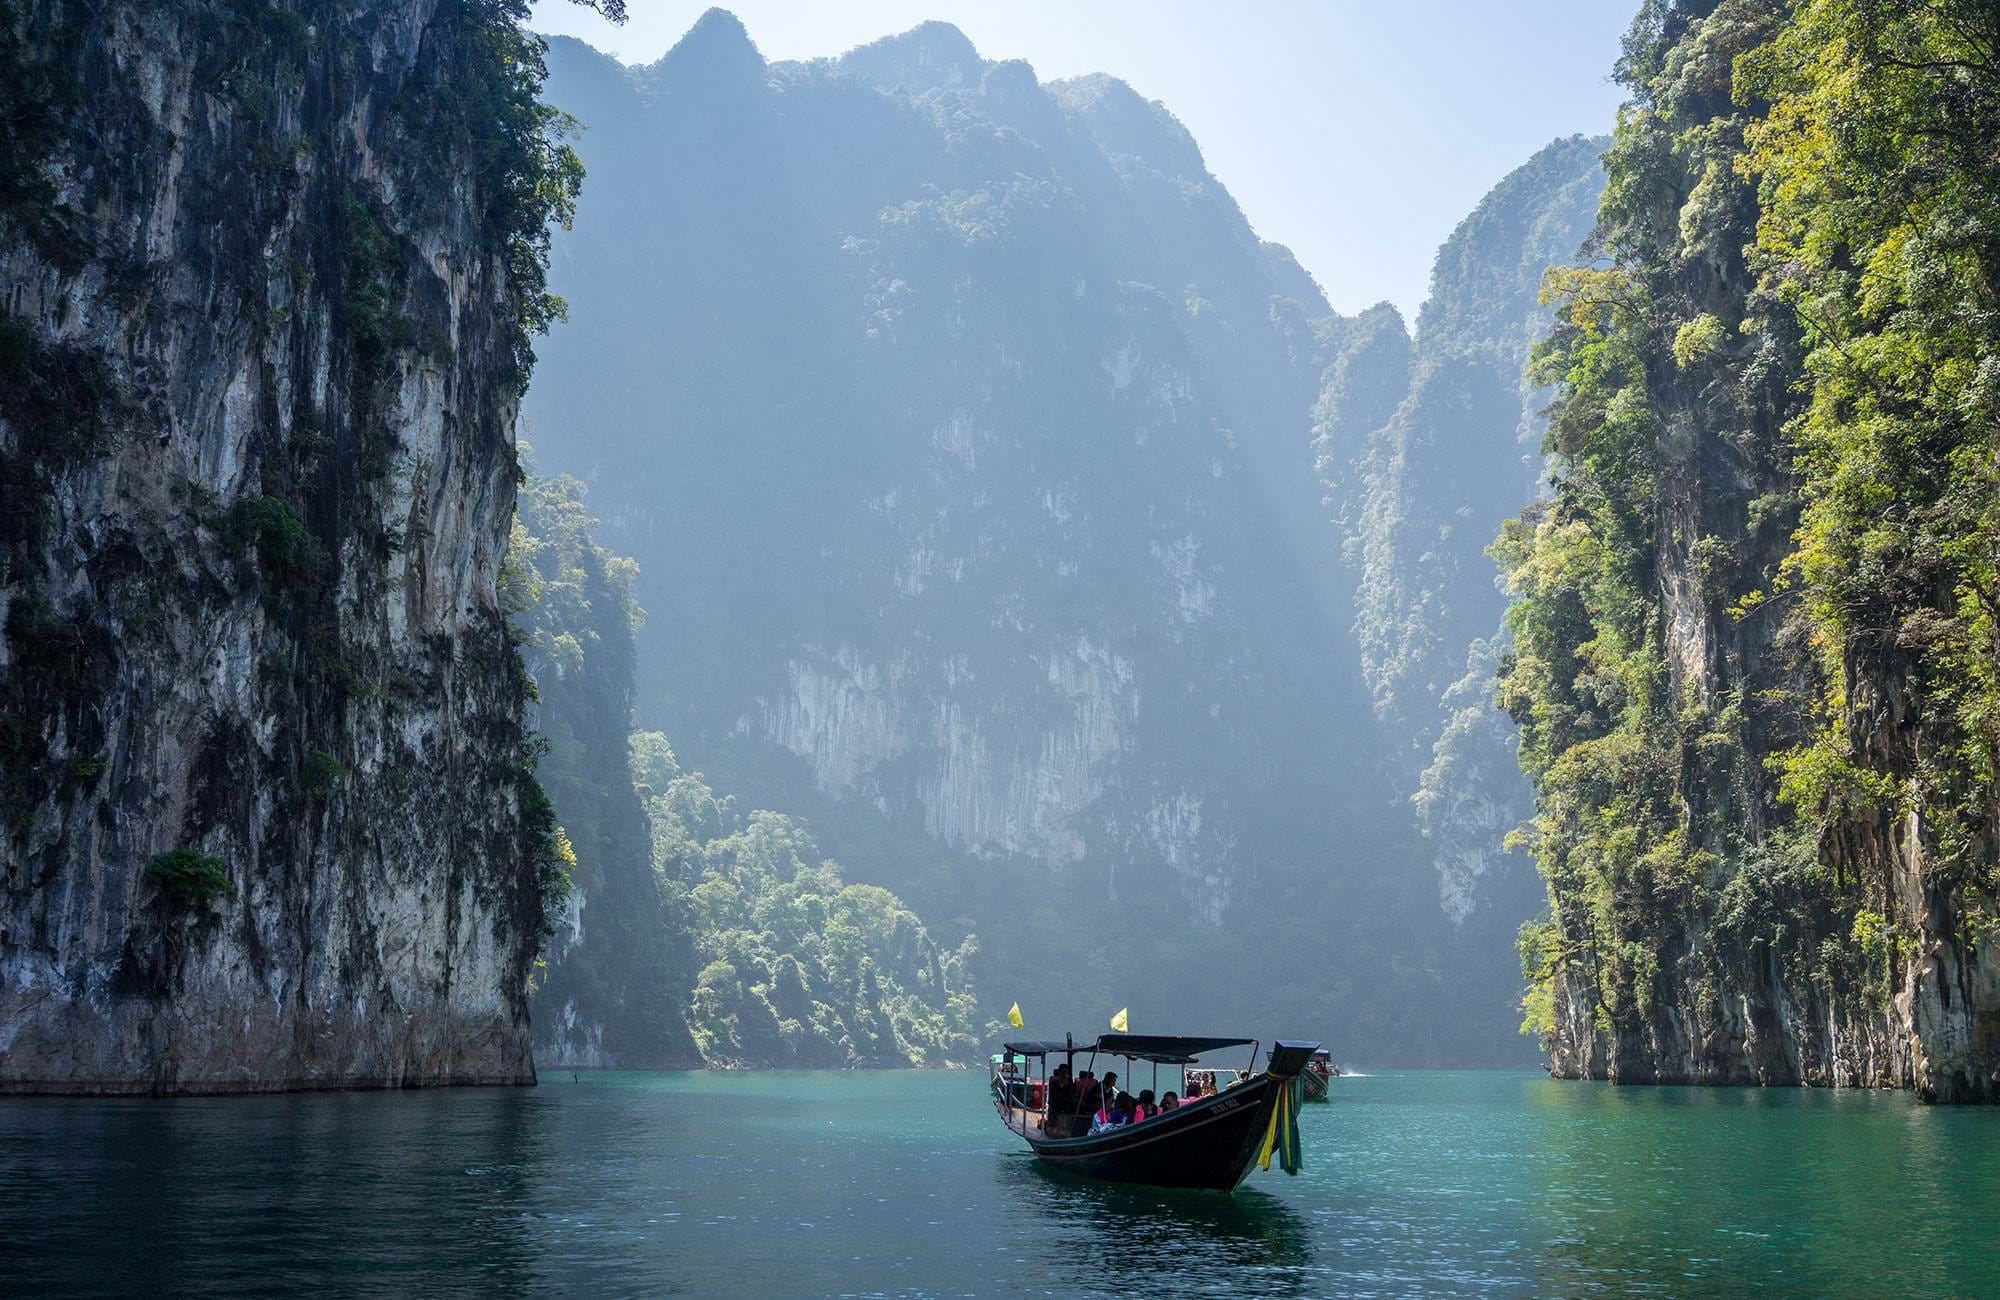 thailand-khao-sok-national-park-khlong-sok-cover